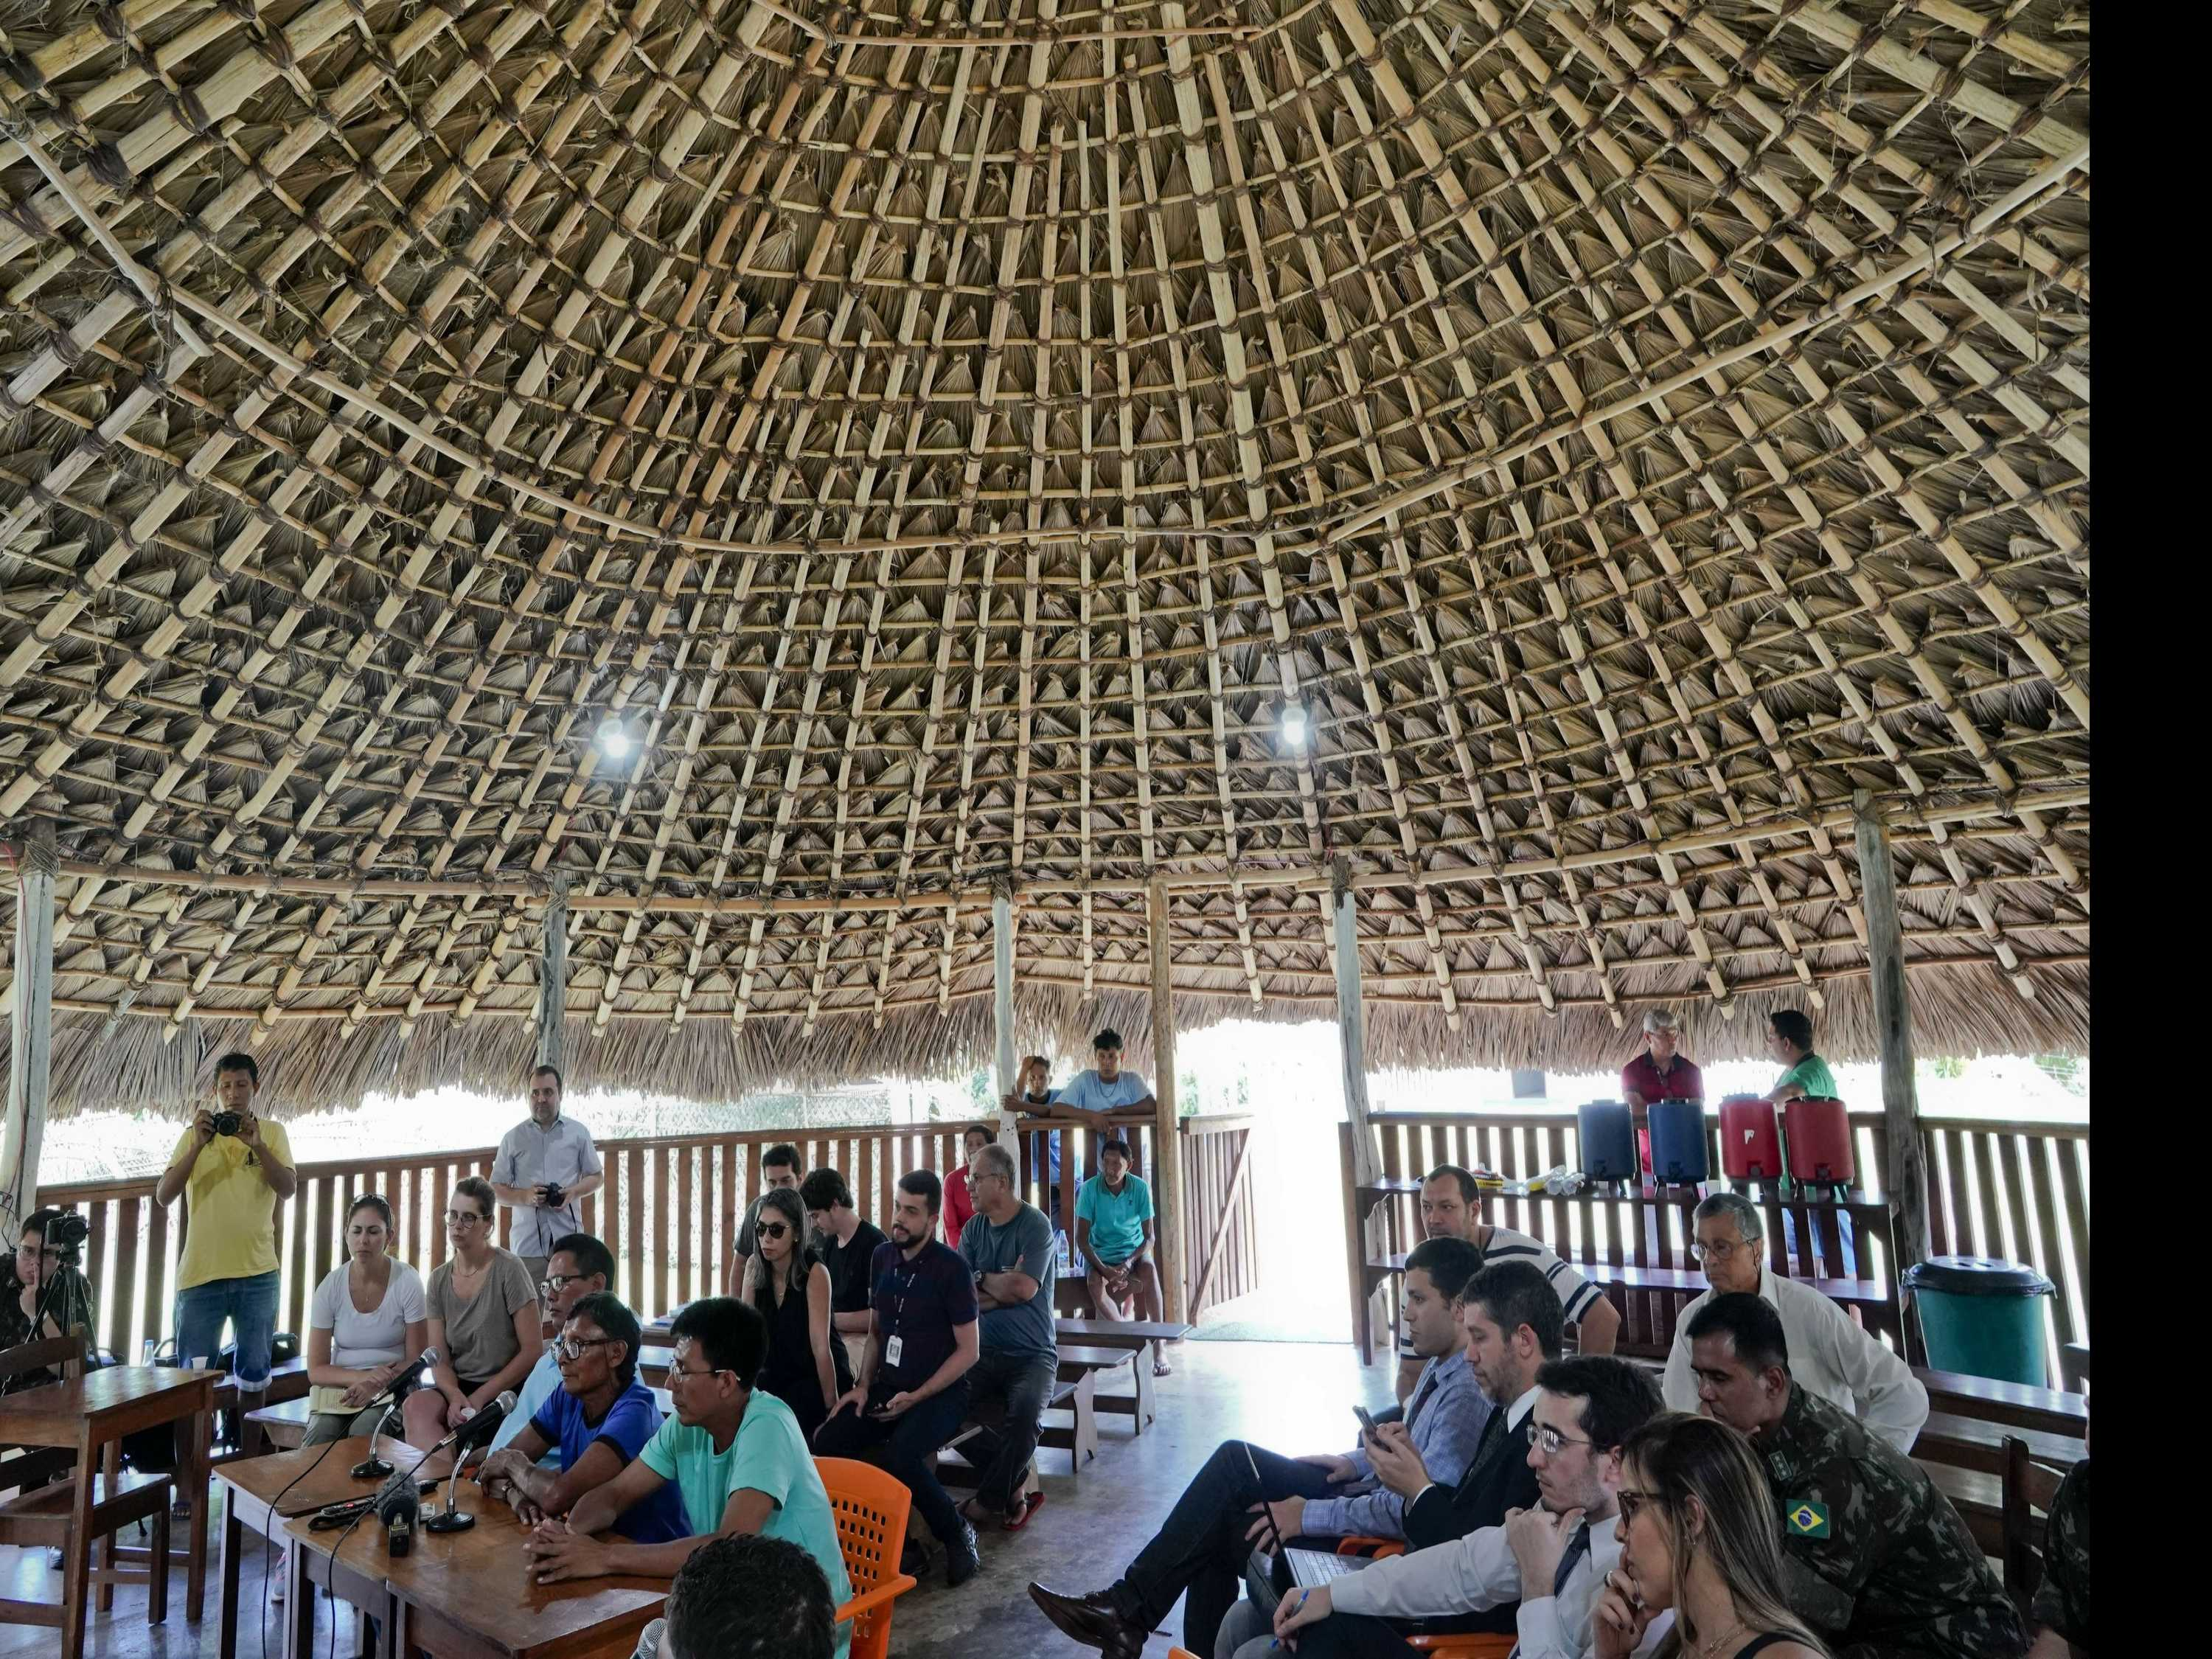 At Hearing, Amazon Tribe Accuses Brazil Army of Atrocities